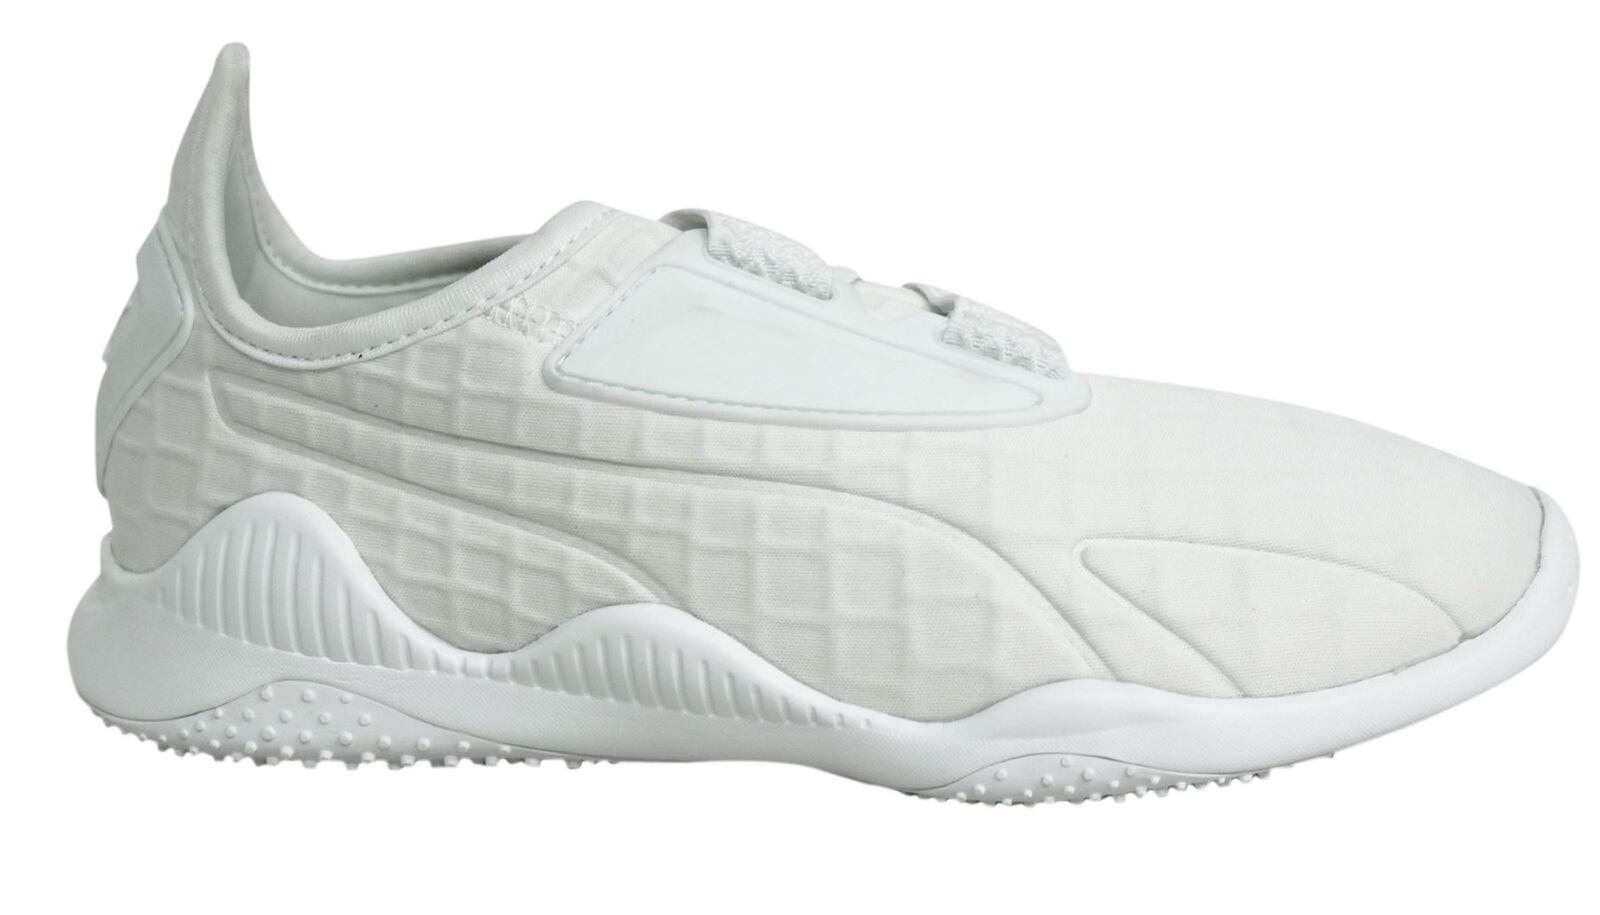 Puma Mostro Sangle Up Blanc Textile Femme Baskets Baskets Baskets 363391 02 M12 | Perpignan